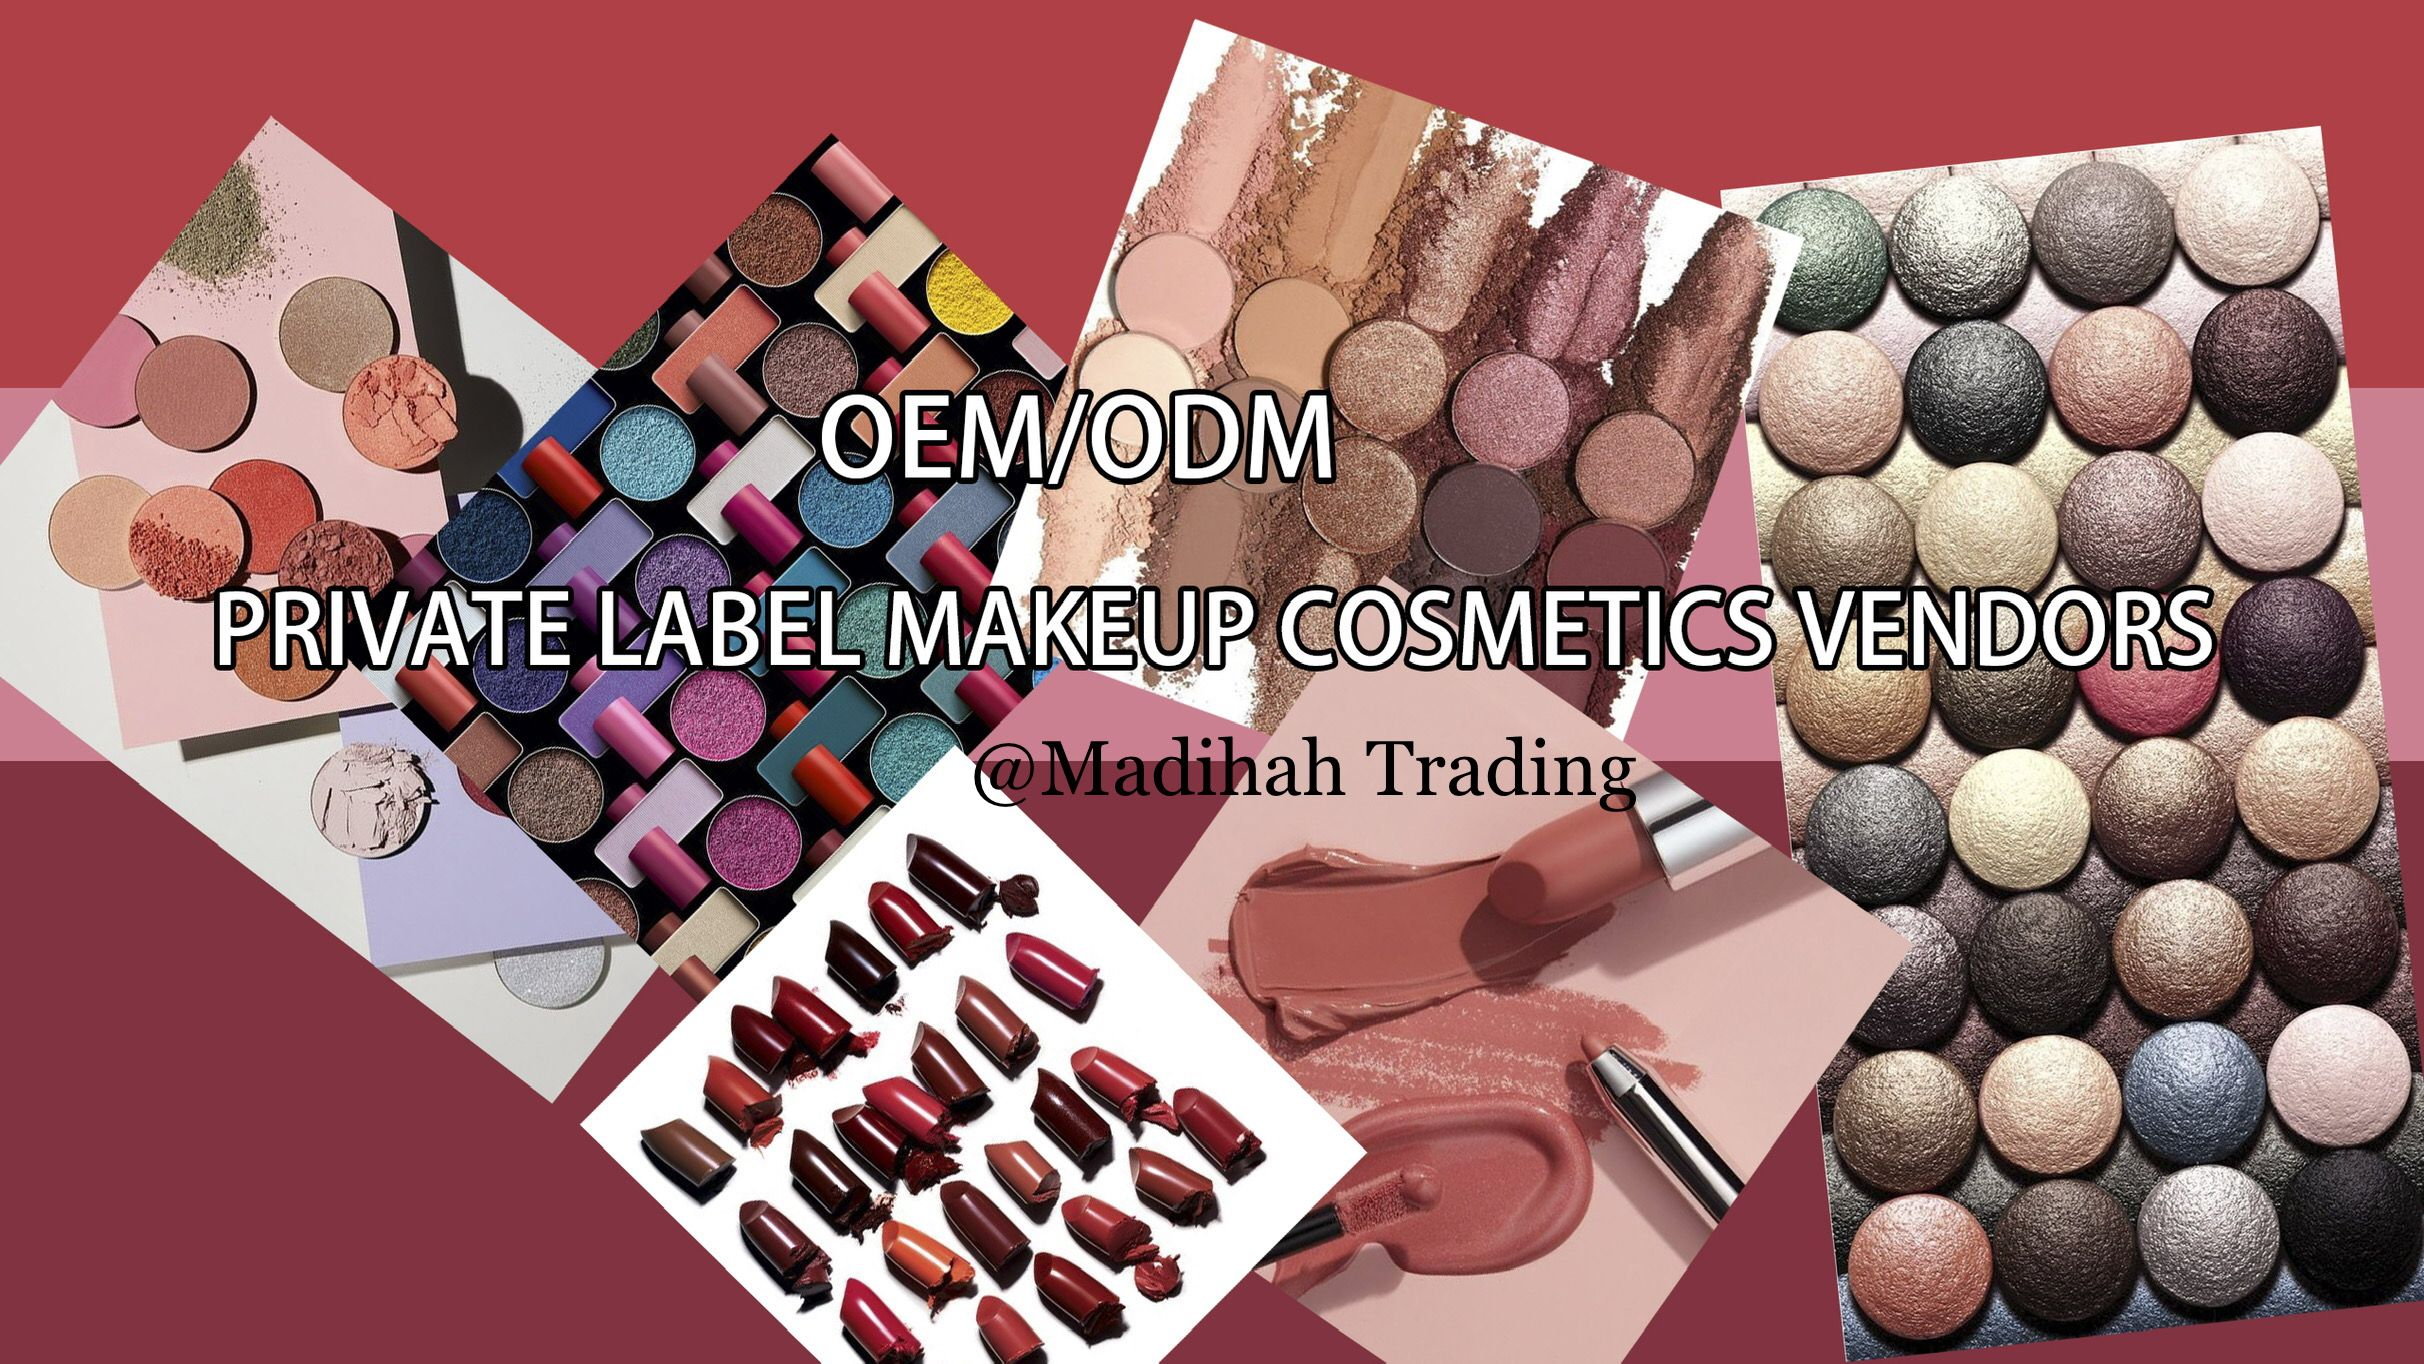 Madihah Trading wholesale private label cosmetics makeup